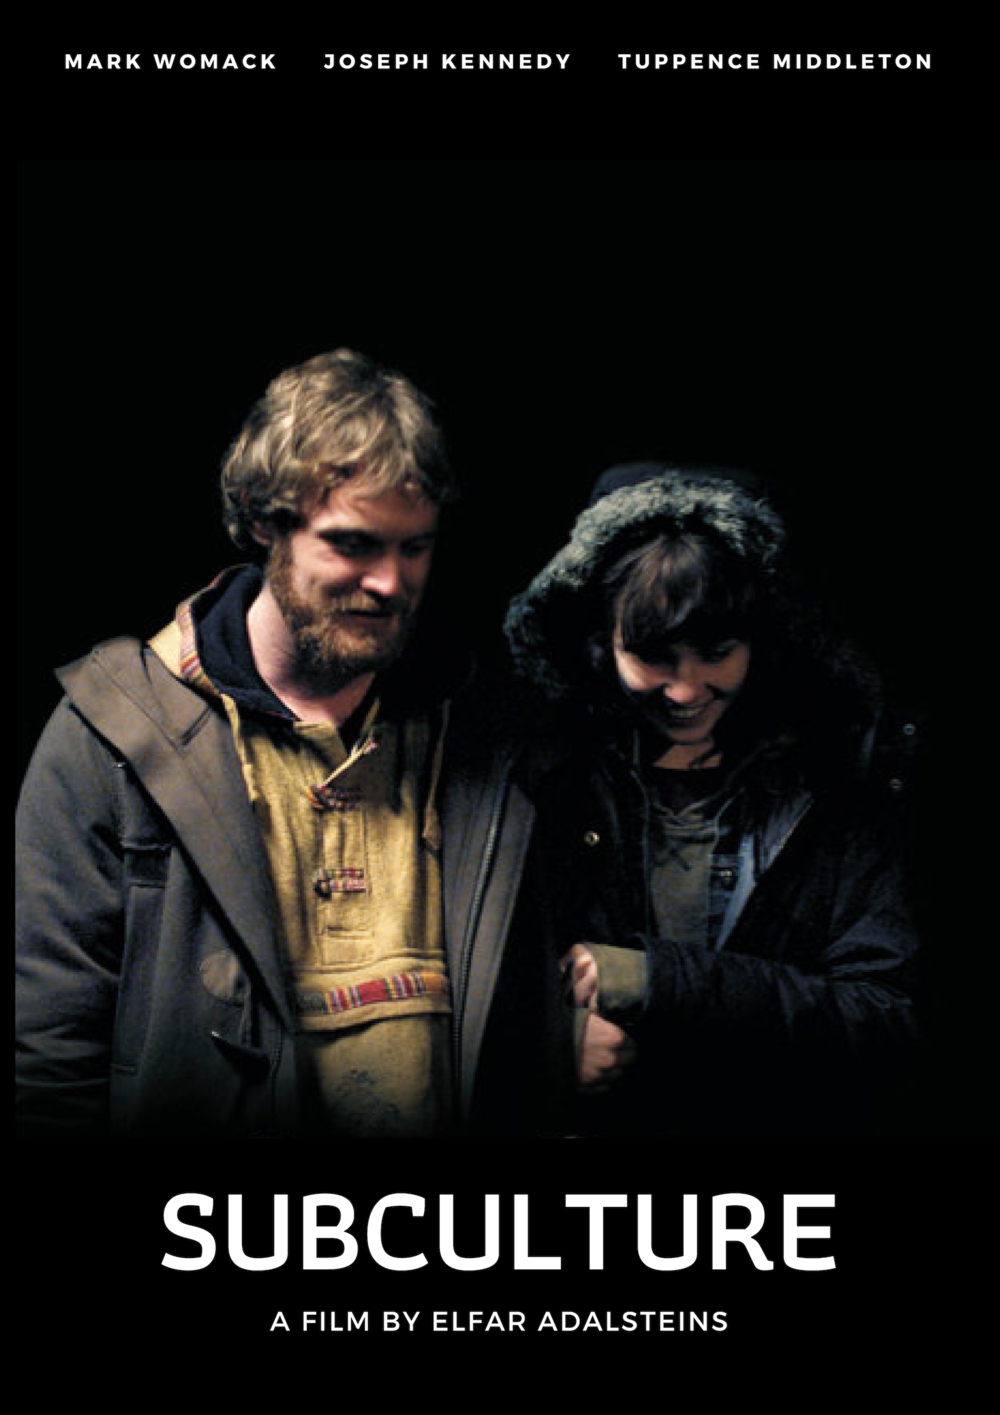 SUBCULTURE (2011)